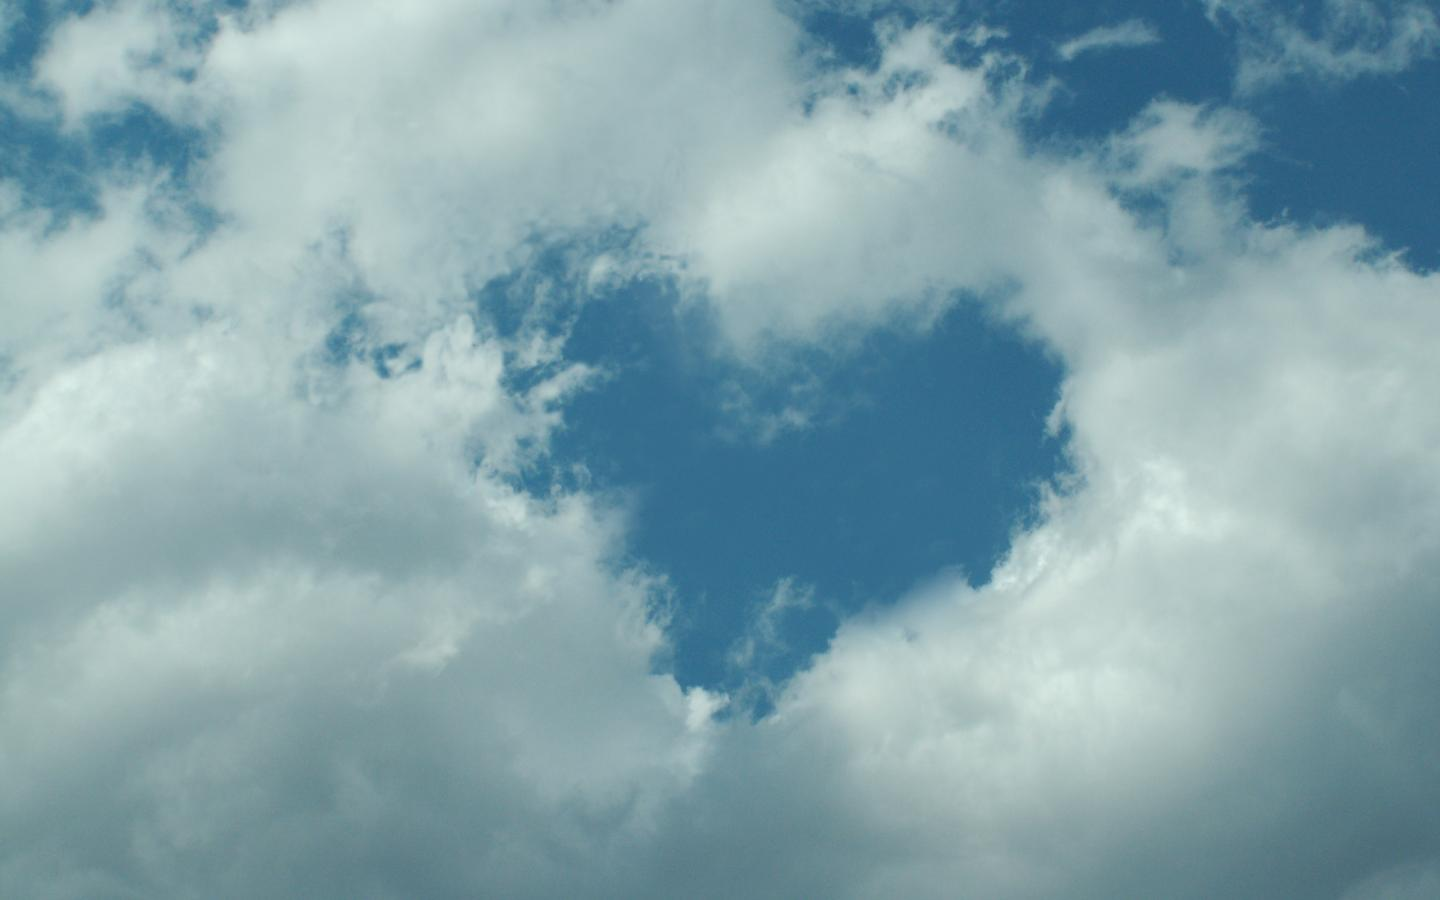 Animated Sunset Wallpaper Heart Shaped Cloud 12 Of 57 With Heart Shape Hole In Sky